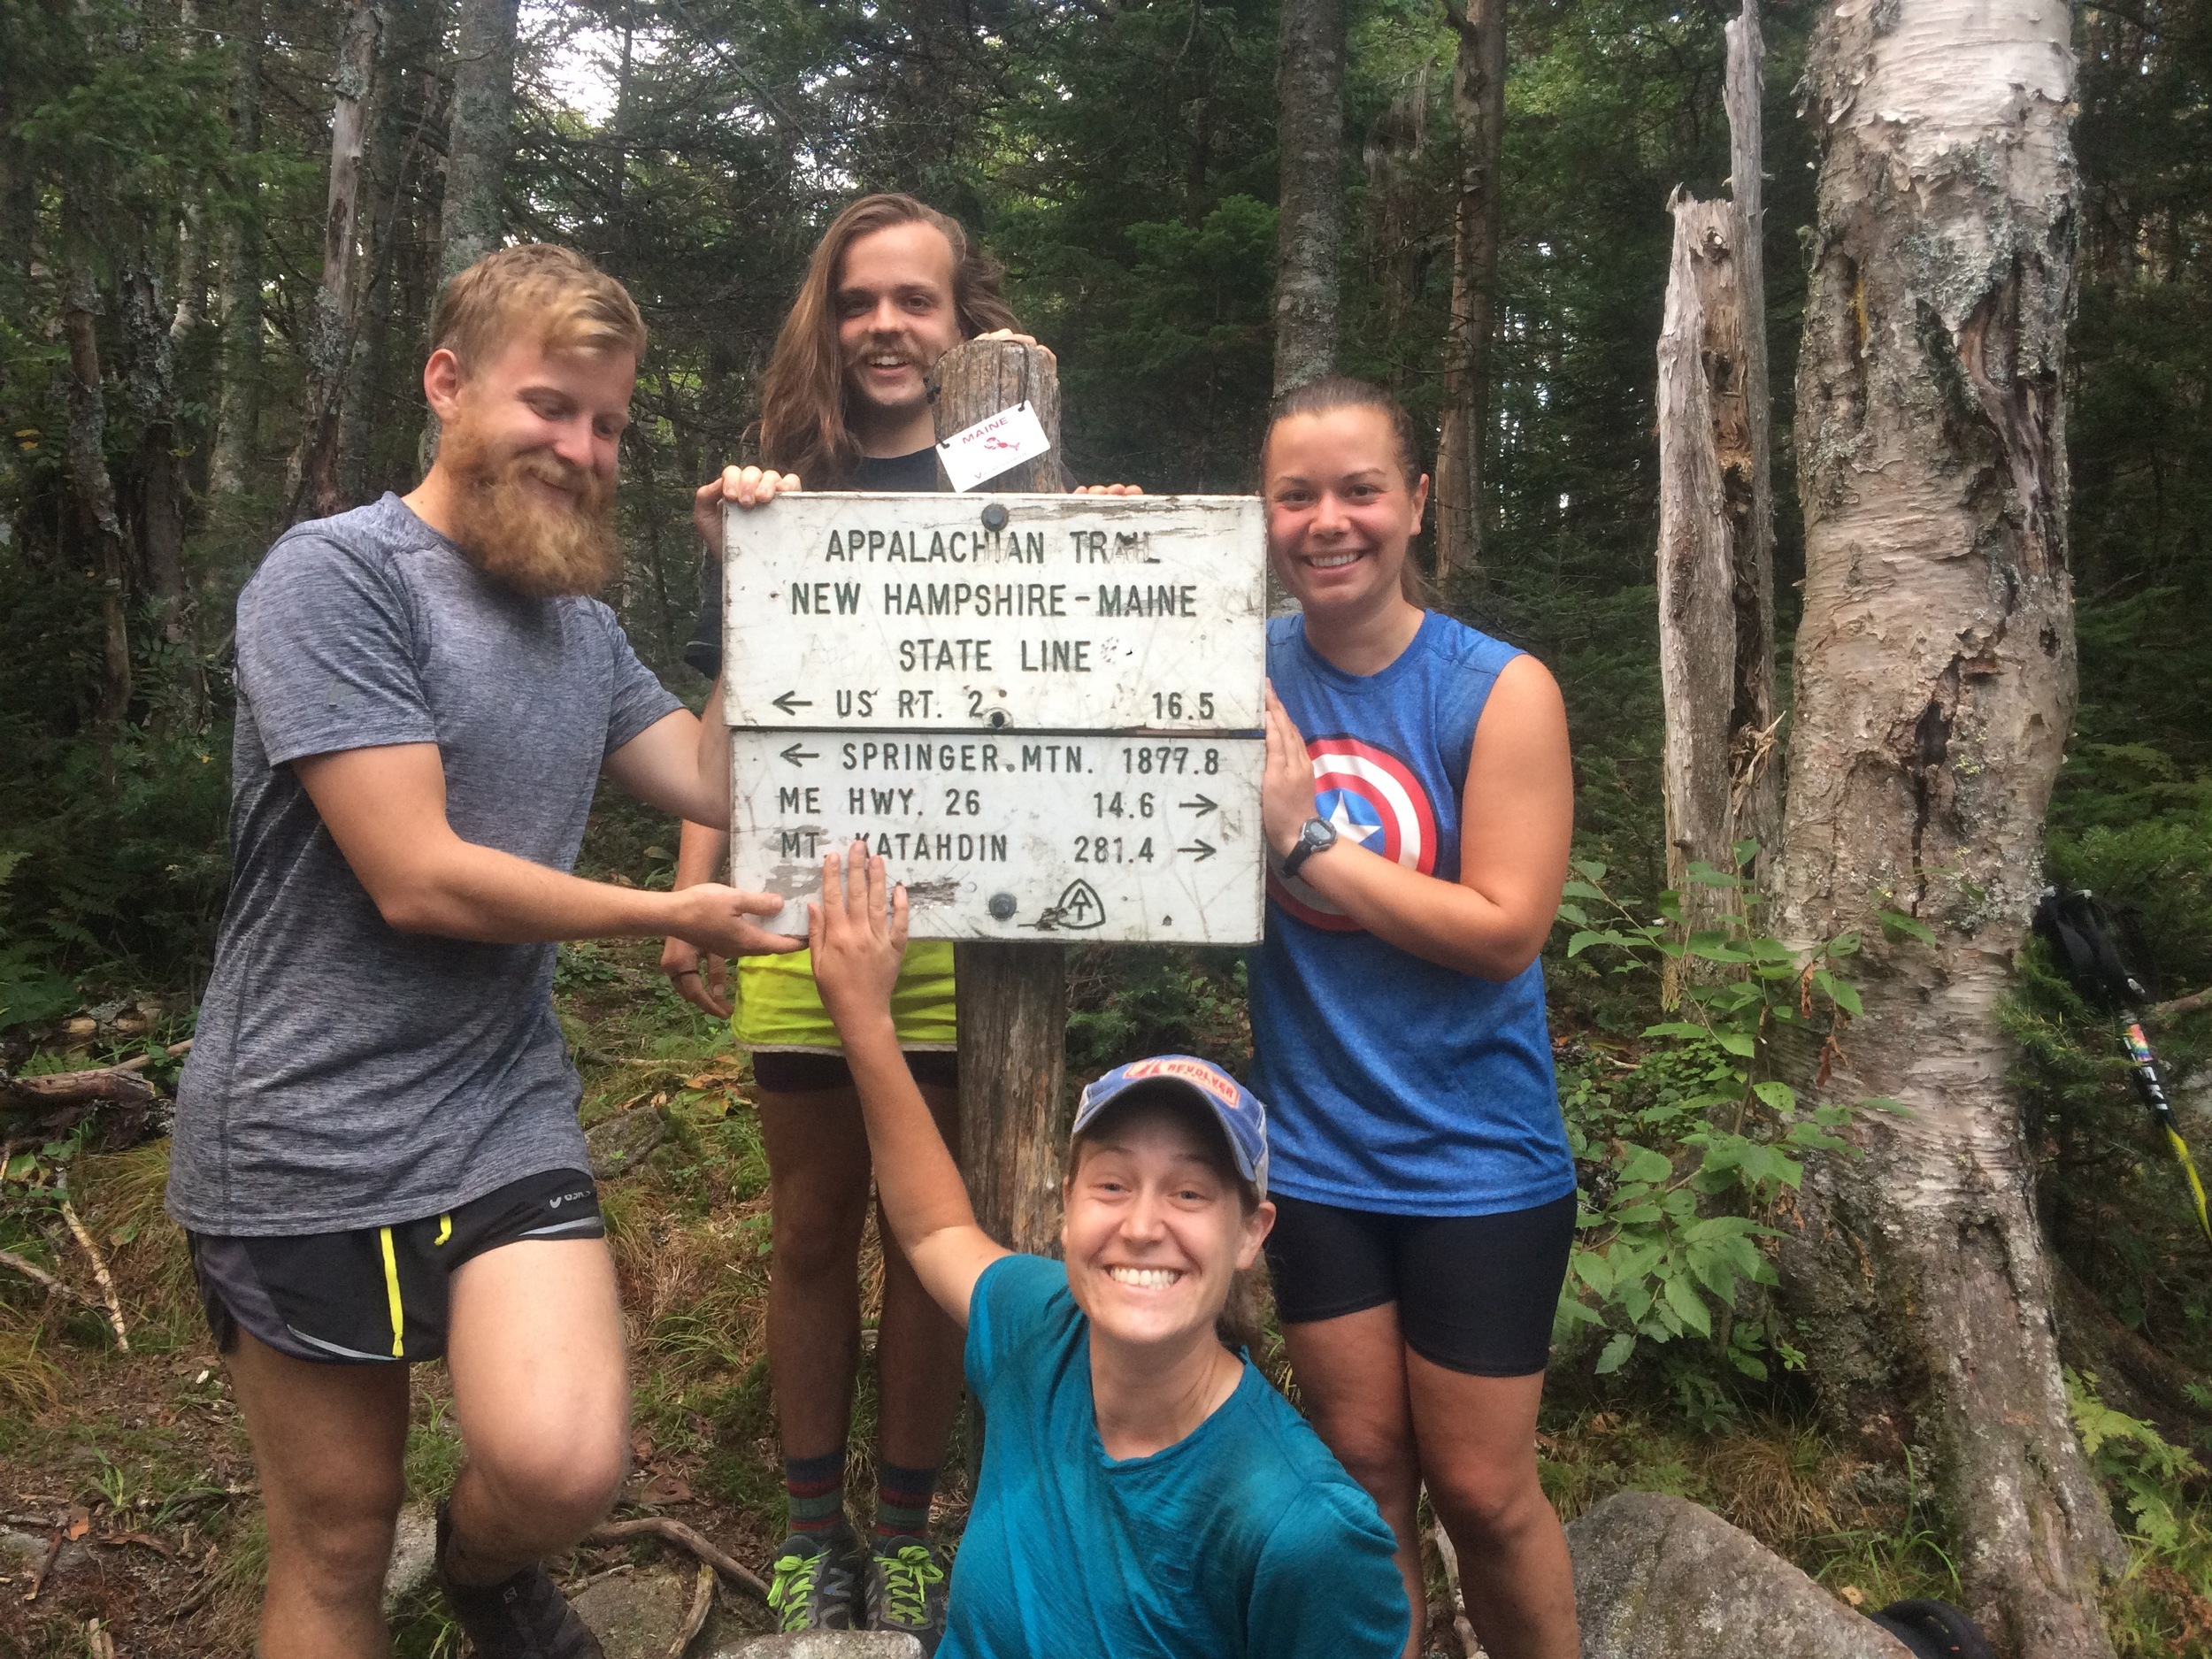 Adios, Neemor, Southpaw and Me at the NH/Maine sign!